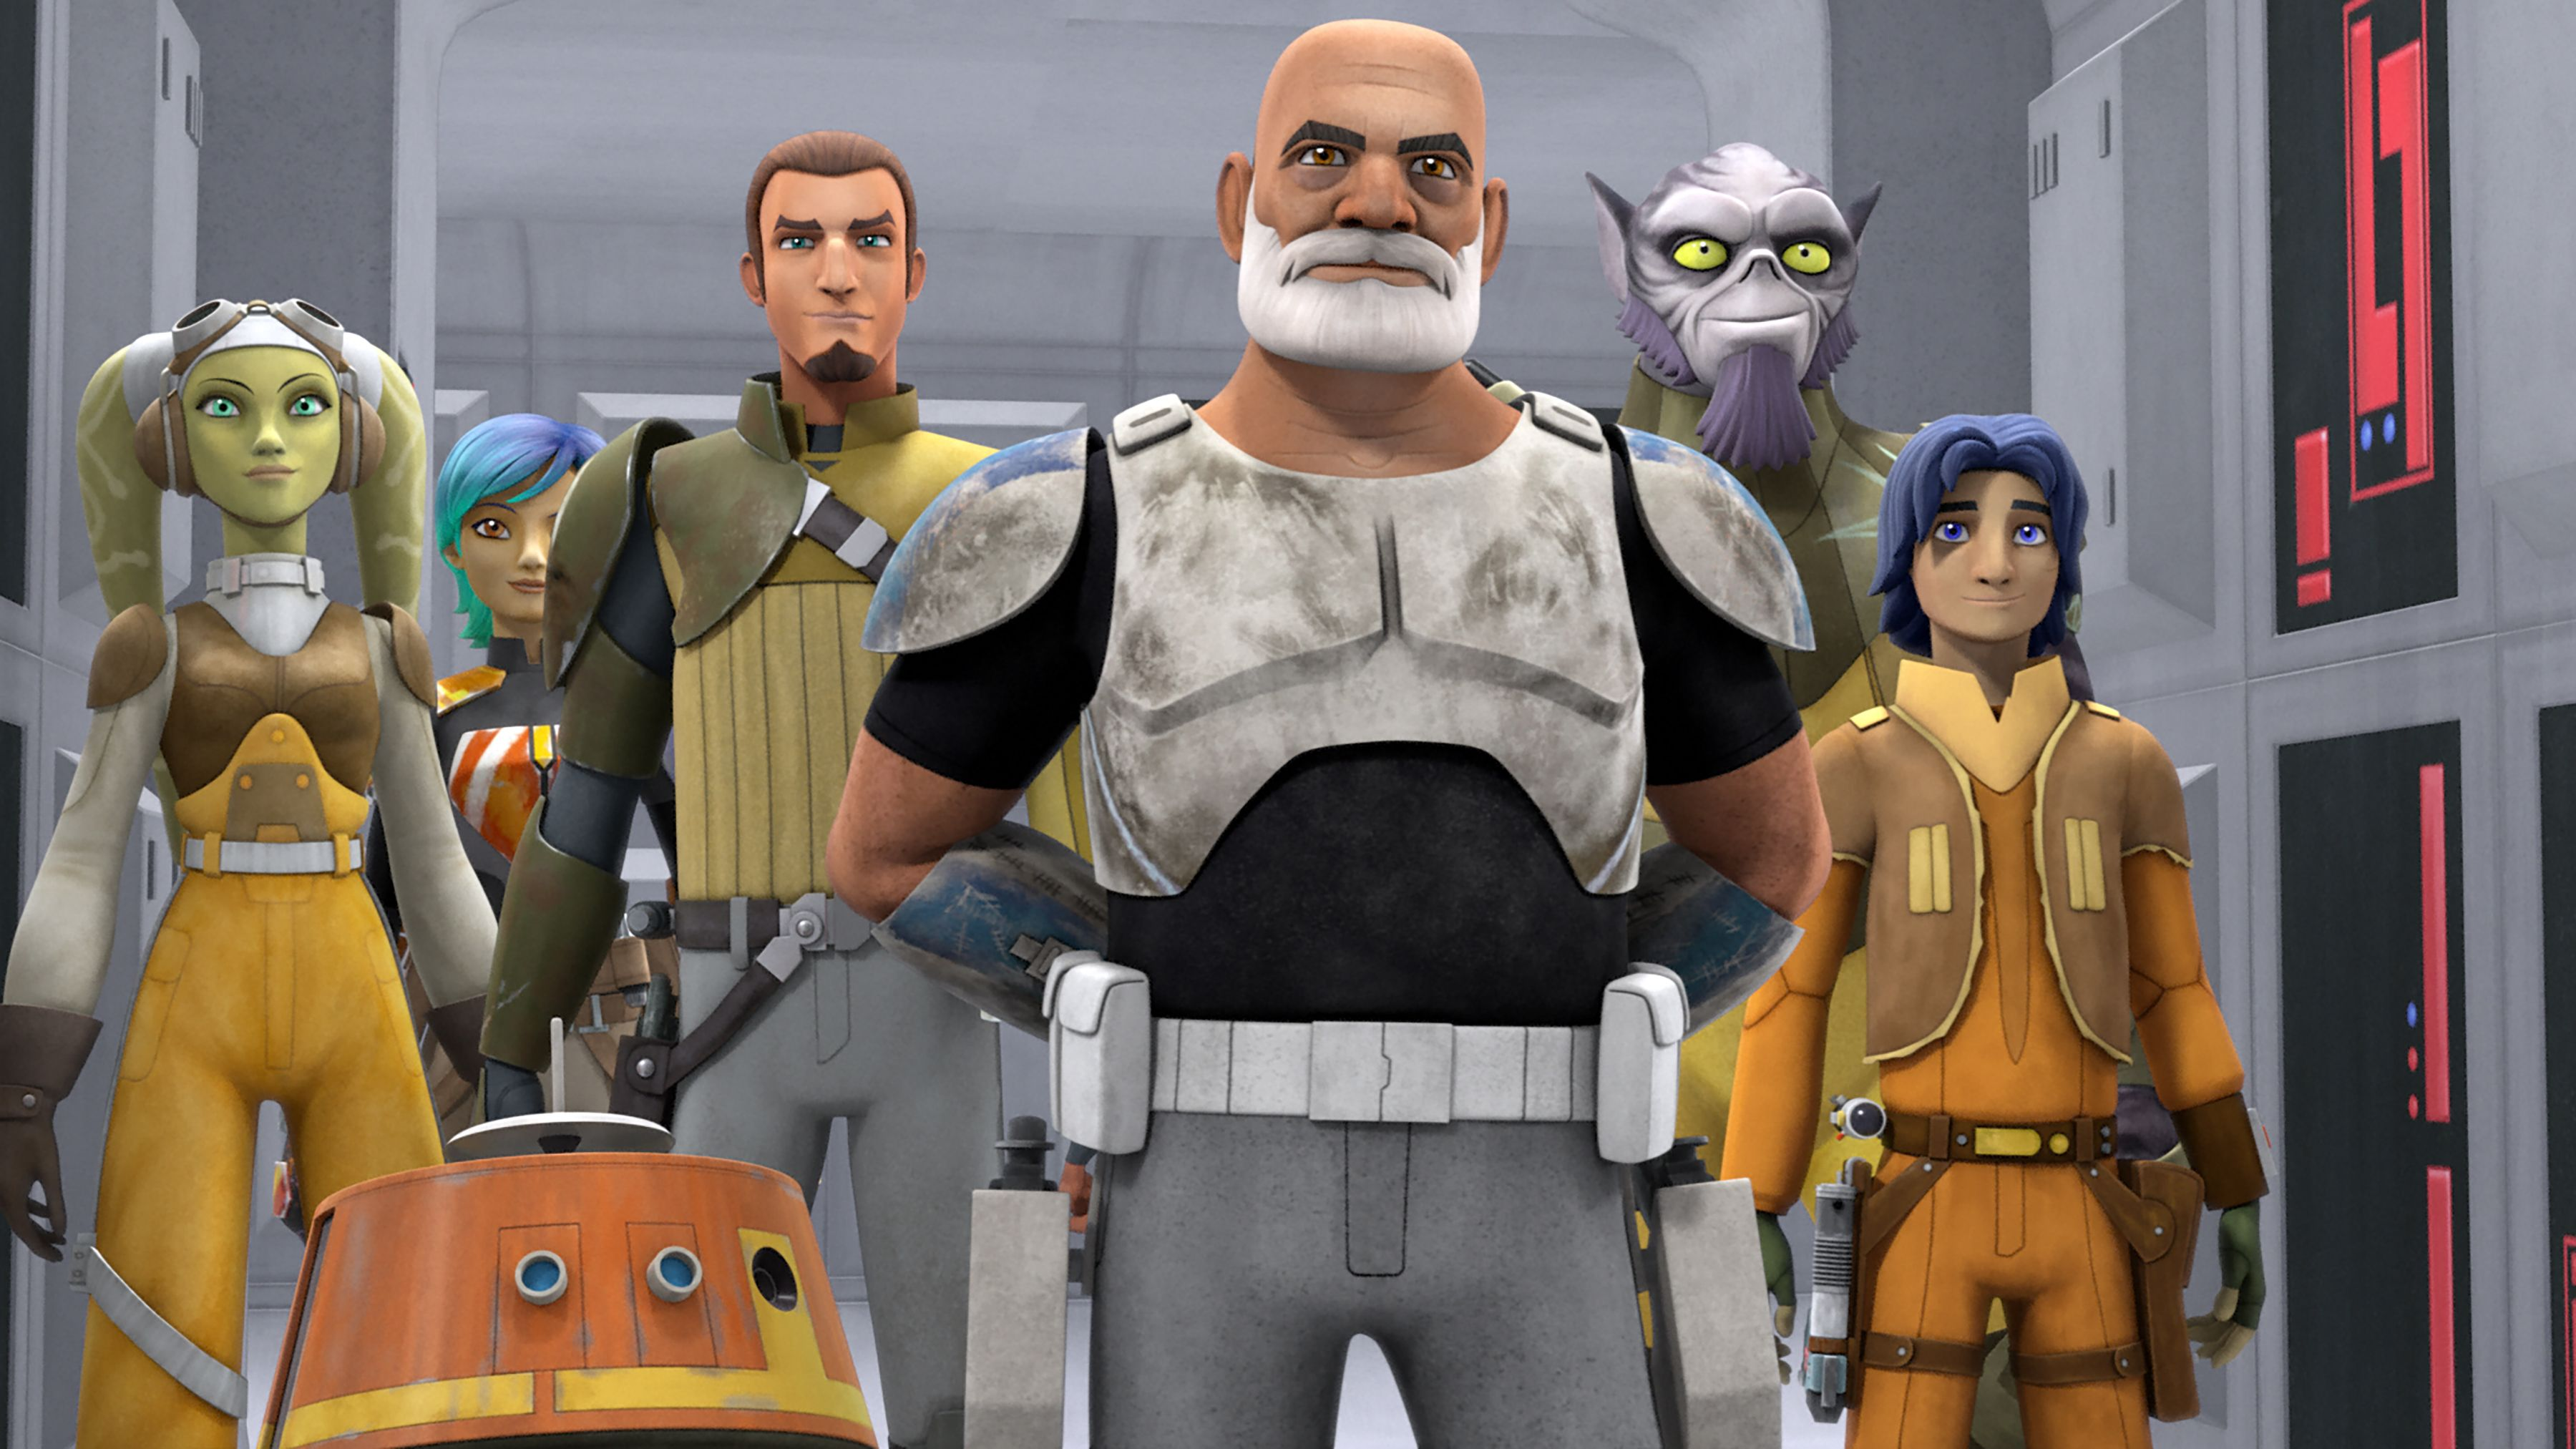 f8d7b30d Star Wars Rebels Season 2: 20 Things to Know | Collider